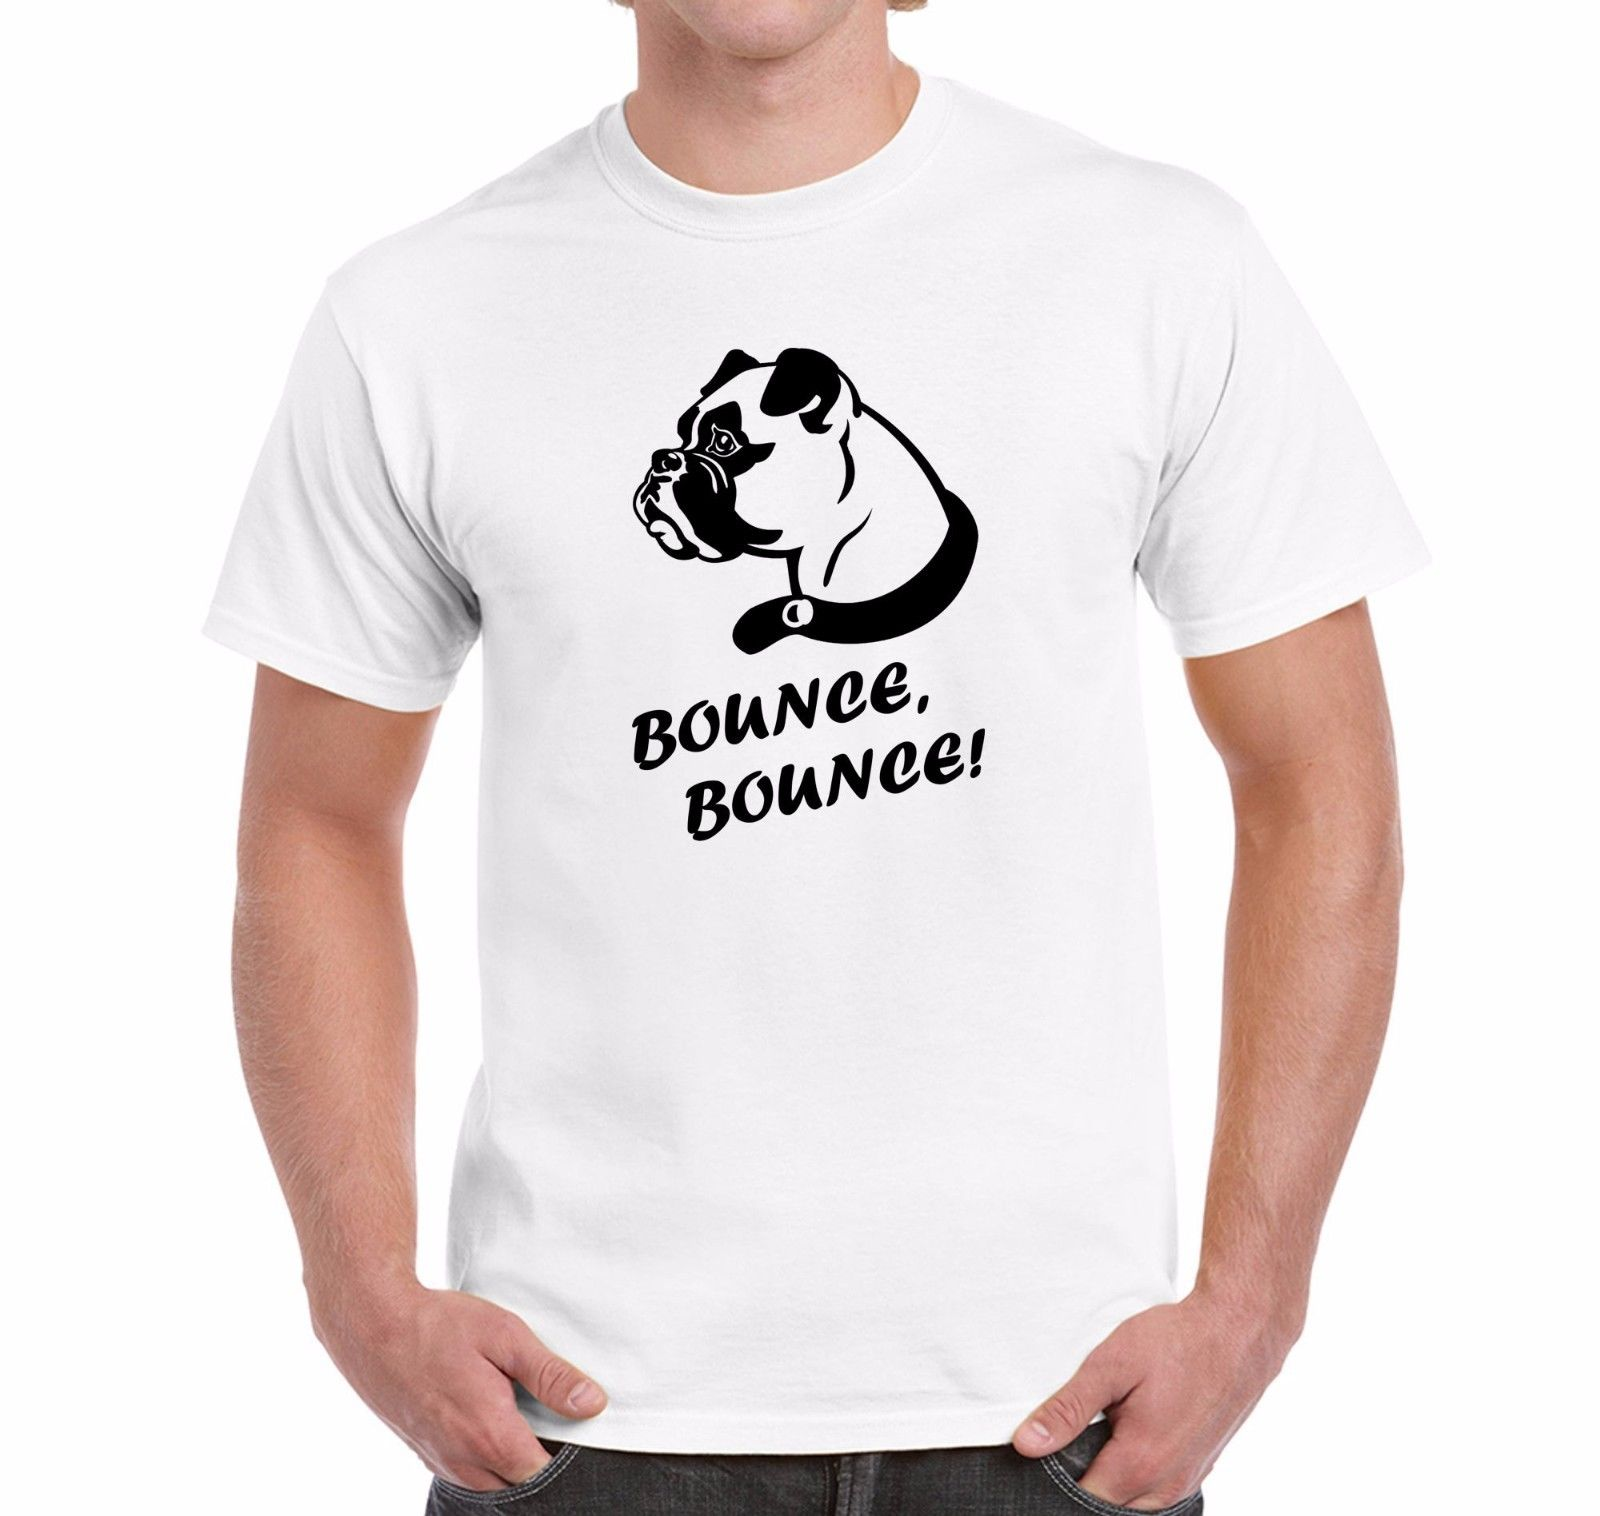 Design your own t-shirt for dogs - T Shirt Ideas Men S Short Sleeve Zomer O Neck Buster The Boxer Dog Bounce Bounce Small To 3xl T Shirts